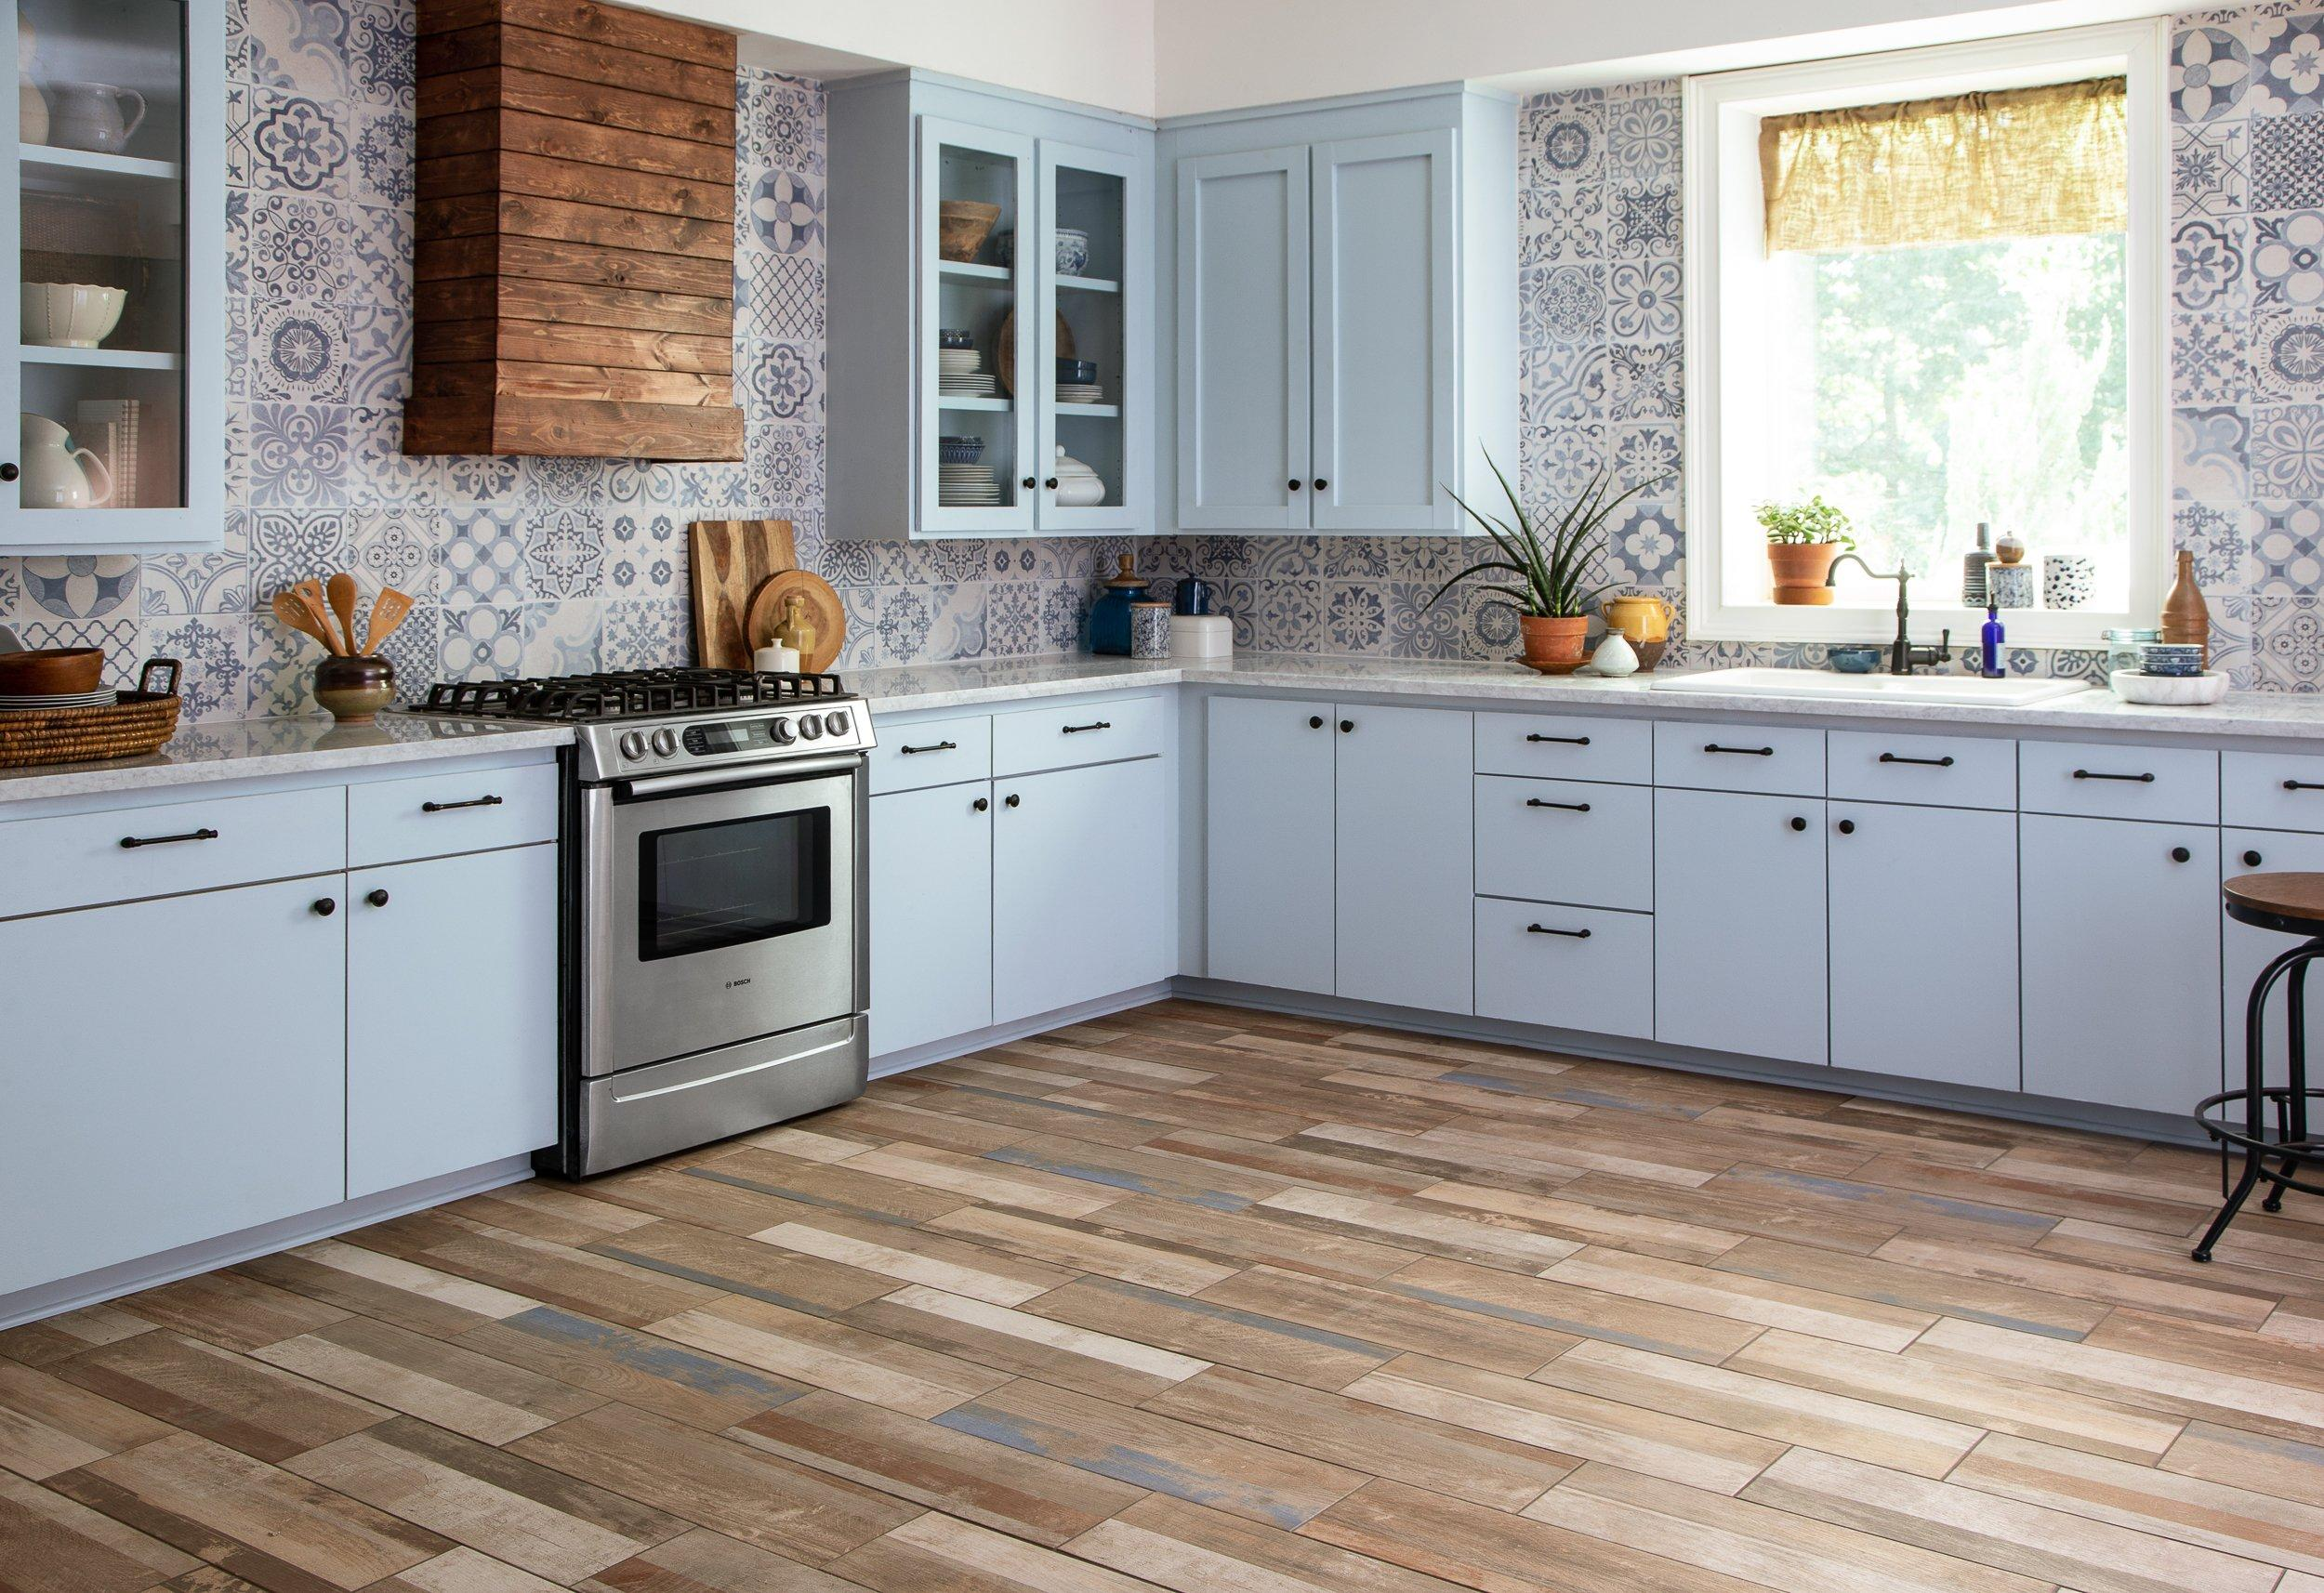 Kitchen cabinets floor - functionality and comfort